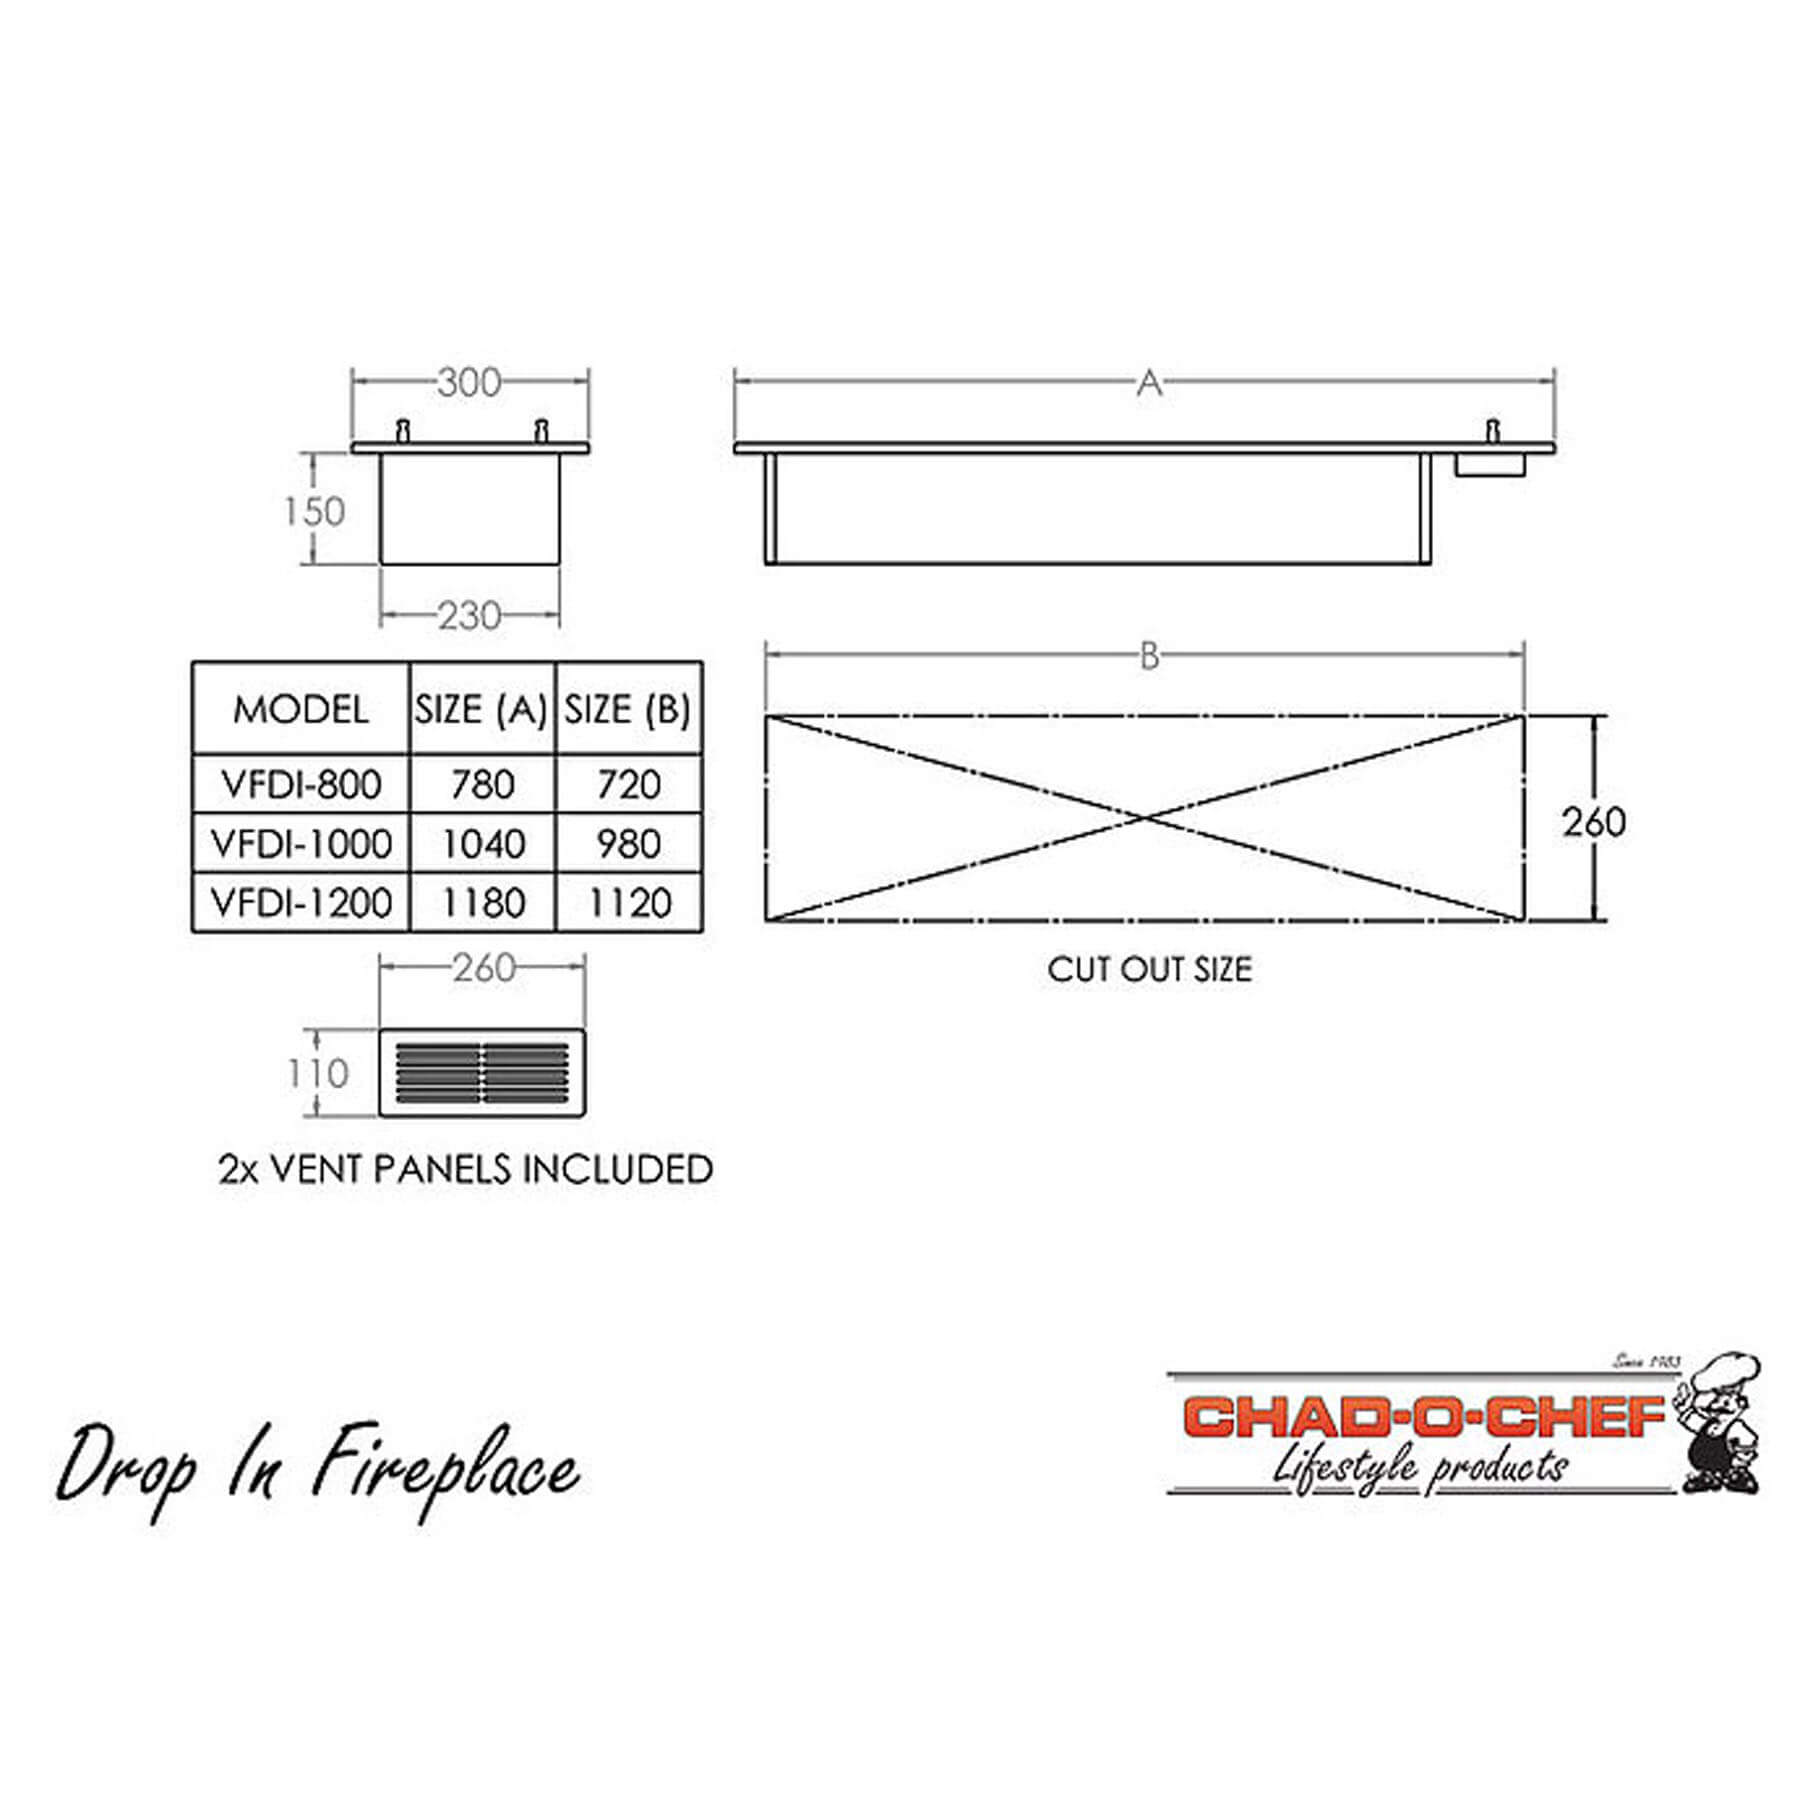 Technical-Specifications-Drop-In-Fireplaces